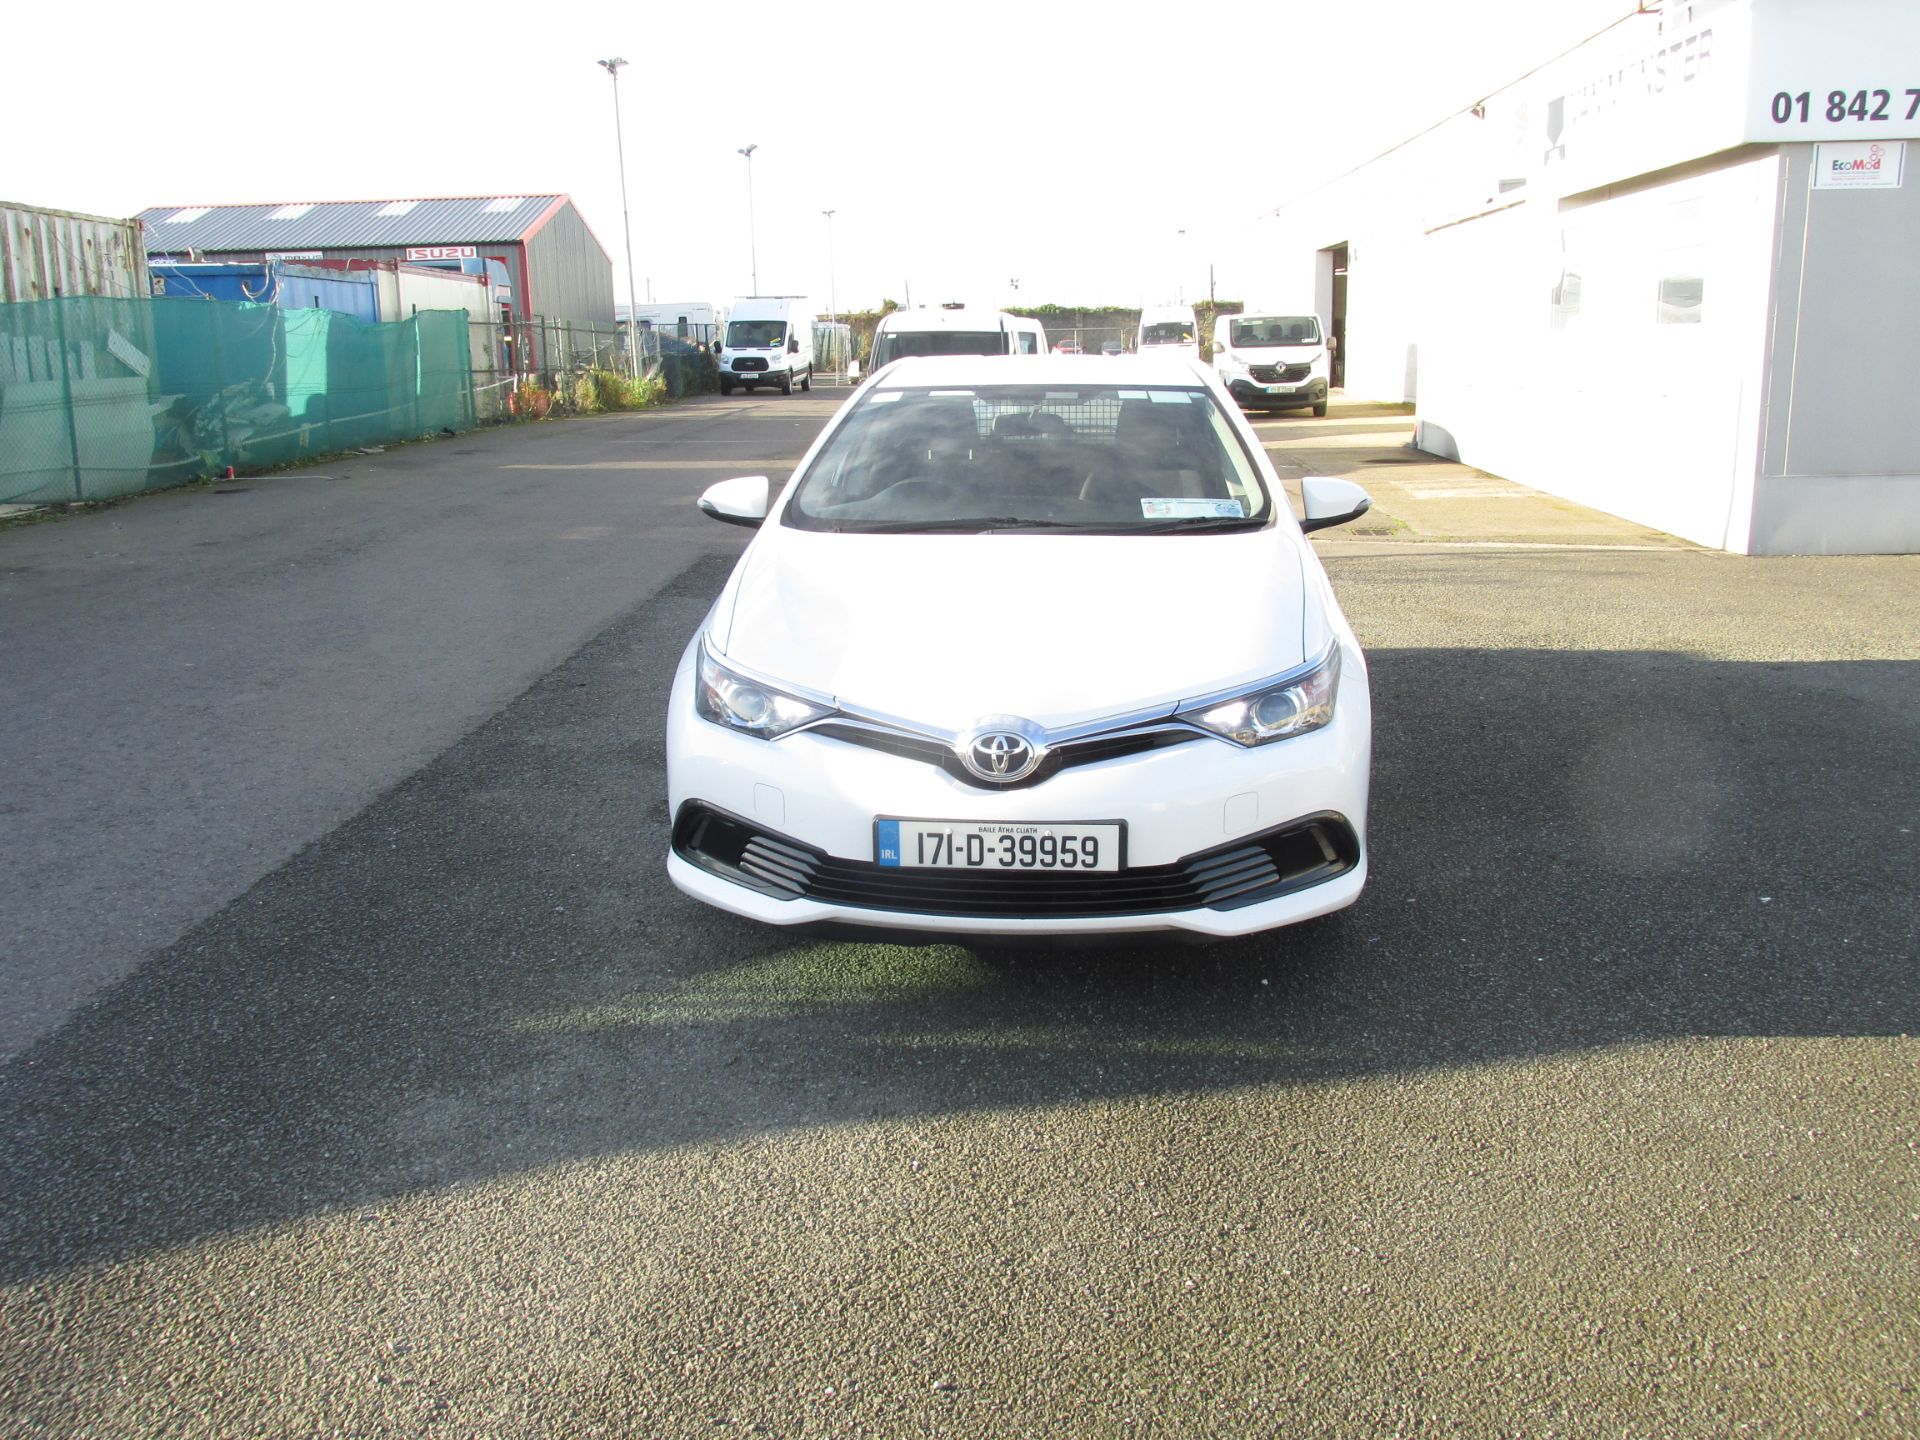 2017 Toyota Auris VAN 1.4 D4D Terra 4DR click and collect call sales for more info (171D39959) Image 2